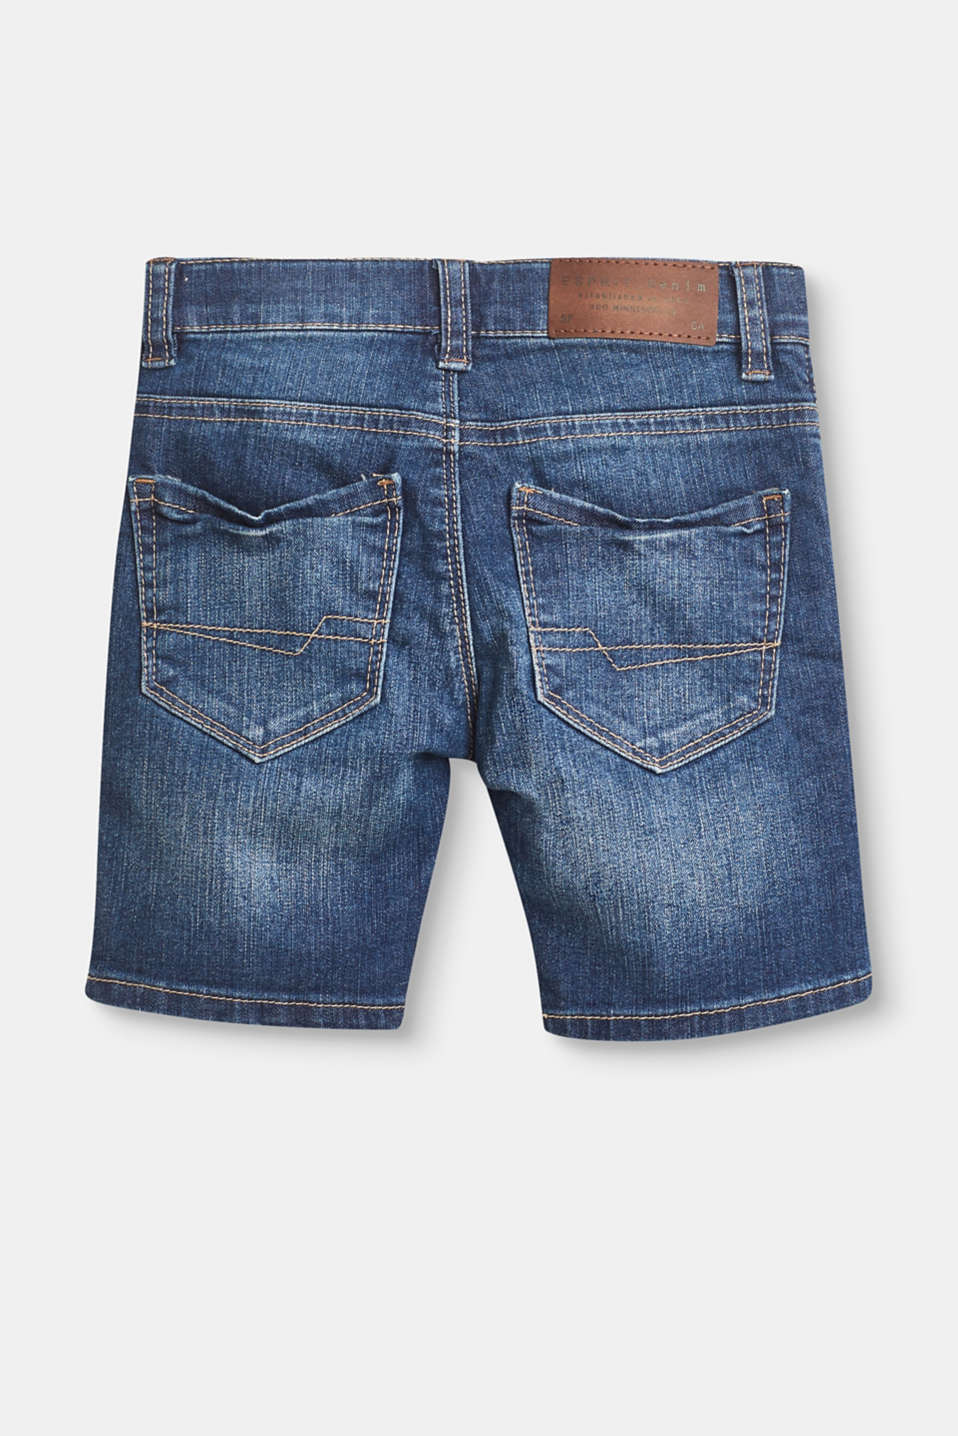 Denim shorts with stretch, an adjustable waistband and appliqués